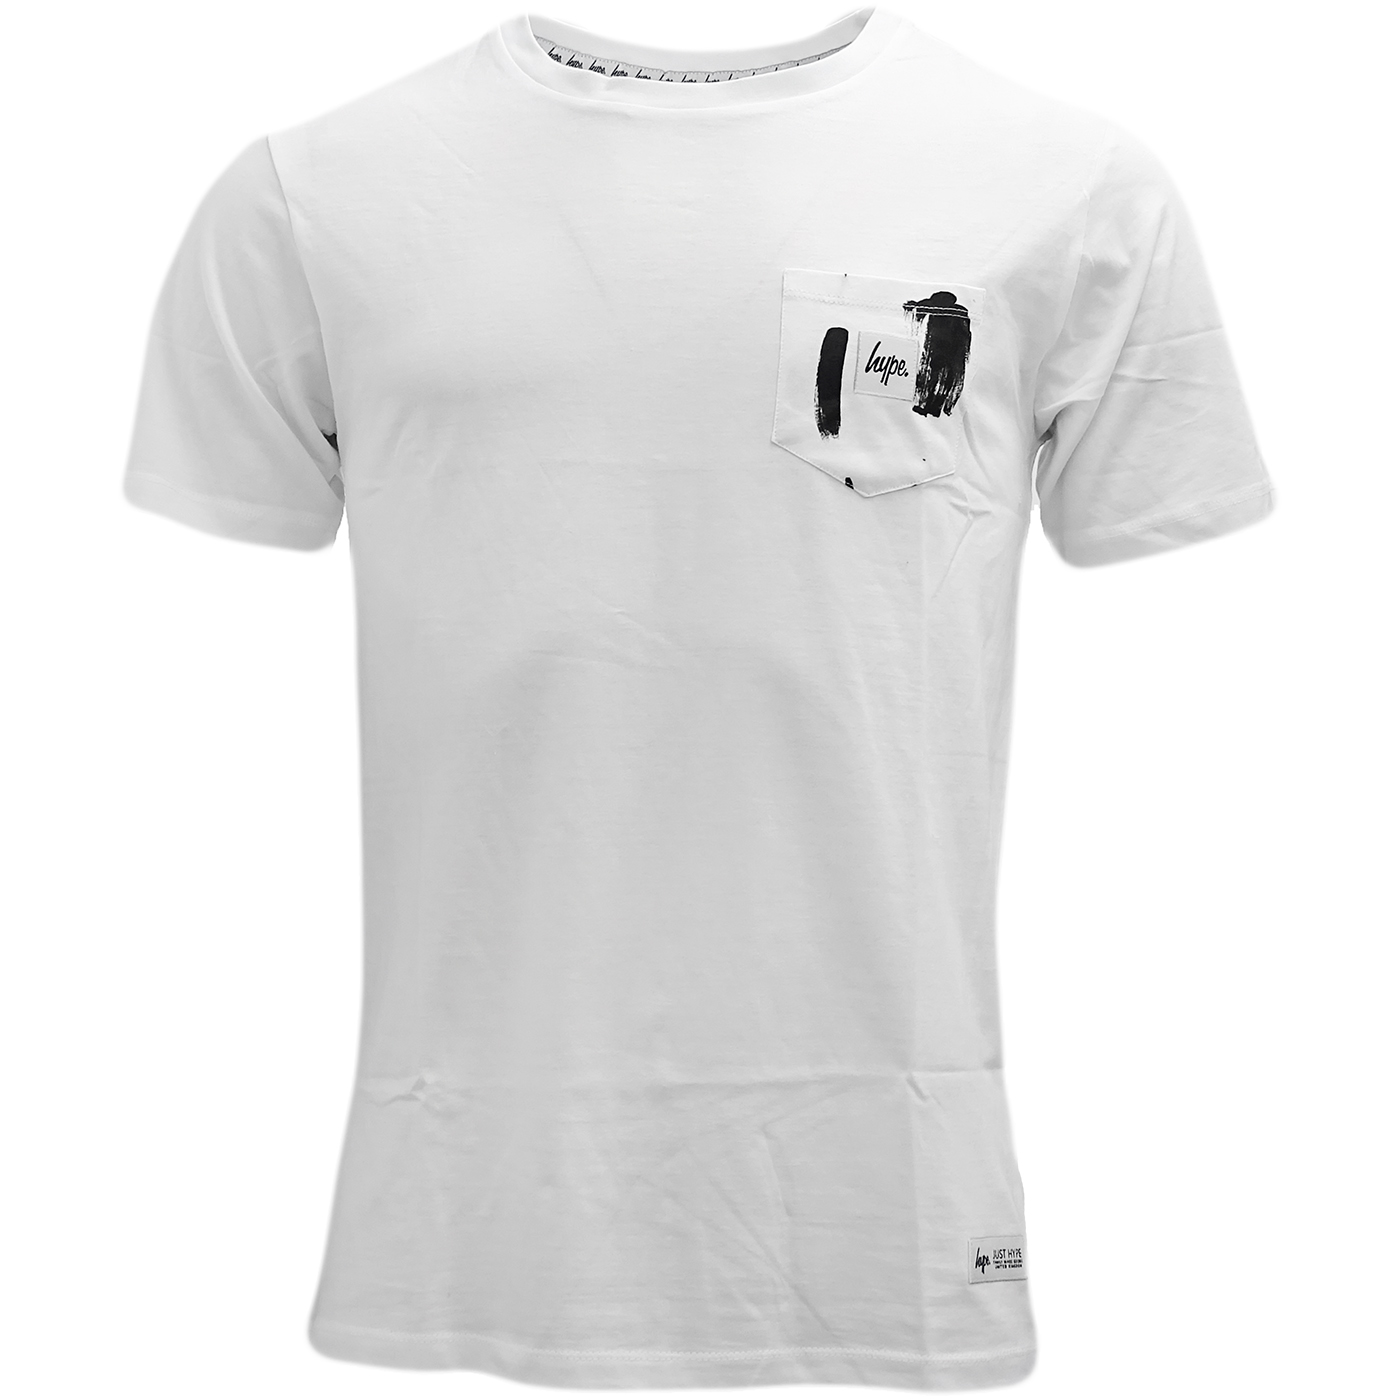 Find great deals on eBay for Plain Pocket T Shirt in T-Shirts and Men's Clothing. Shop with confidence.